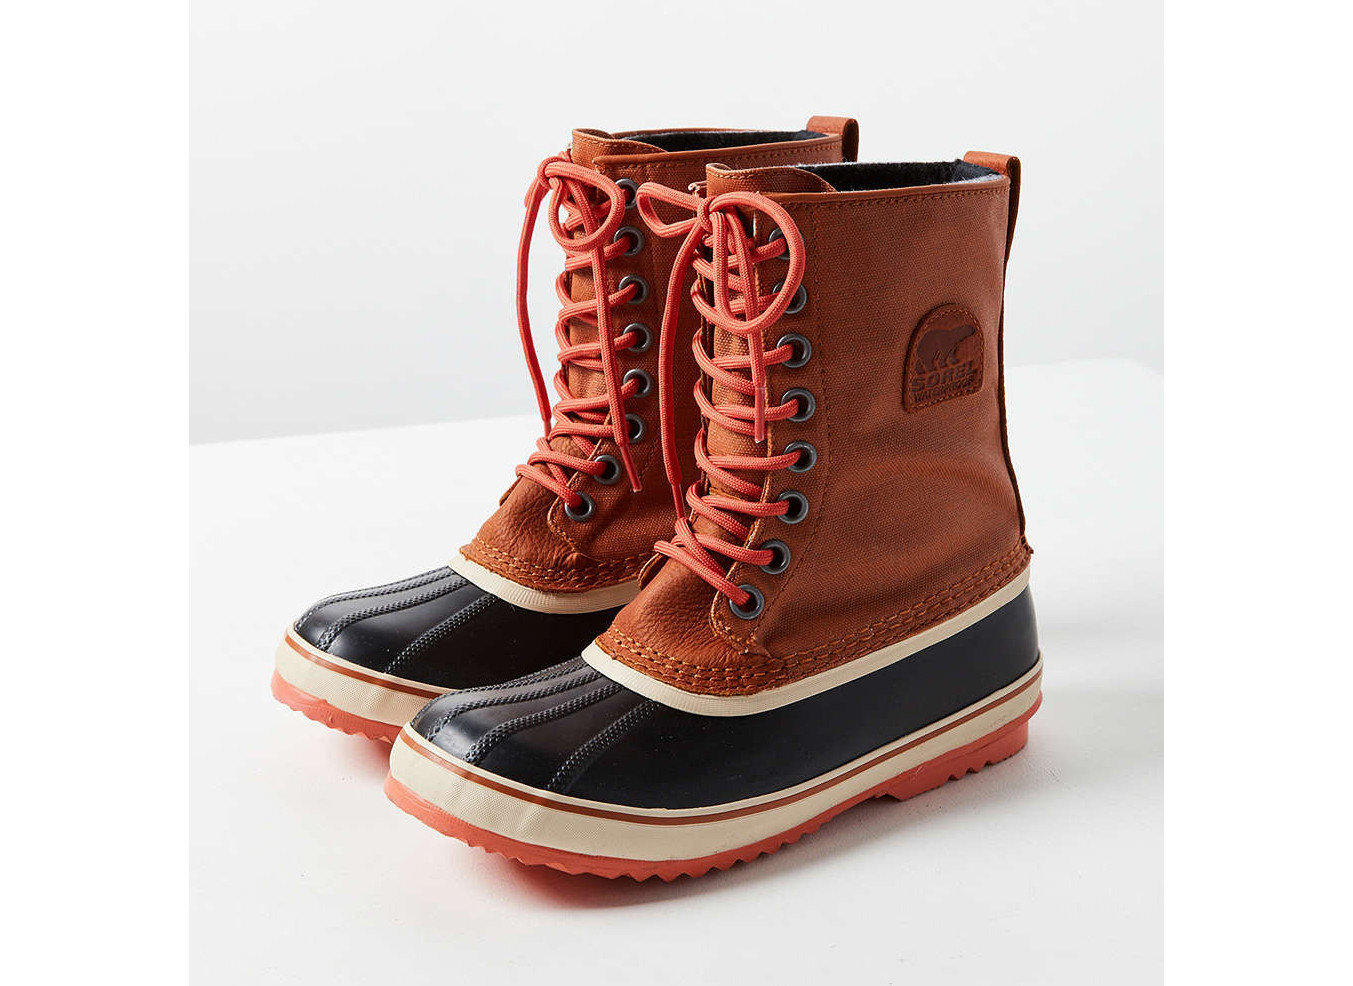 Travel Shop Travel Tips footwear clothing boot shoe brown product snow boot shoes product design